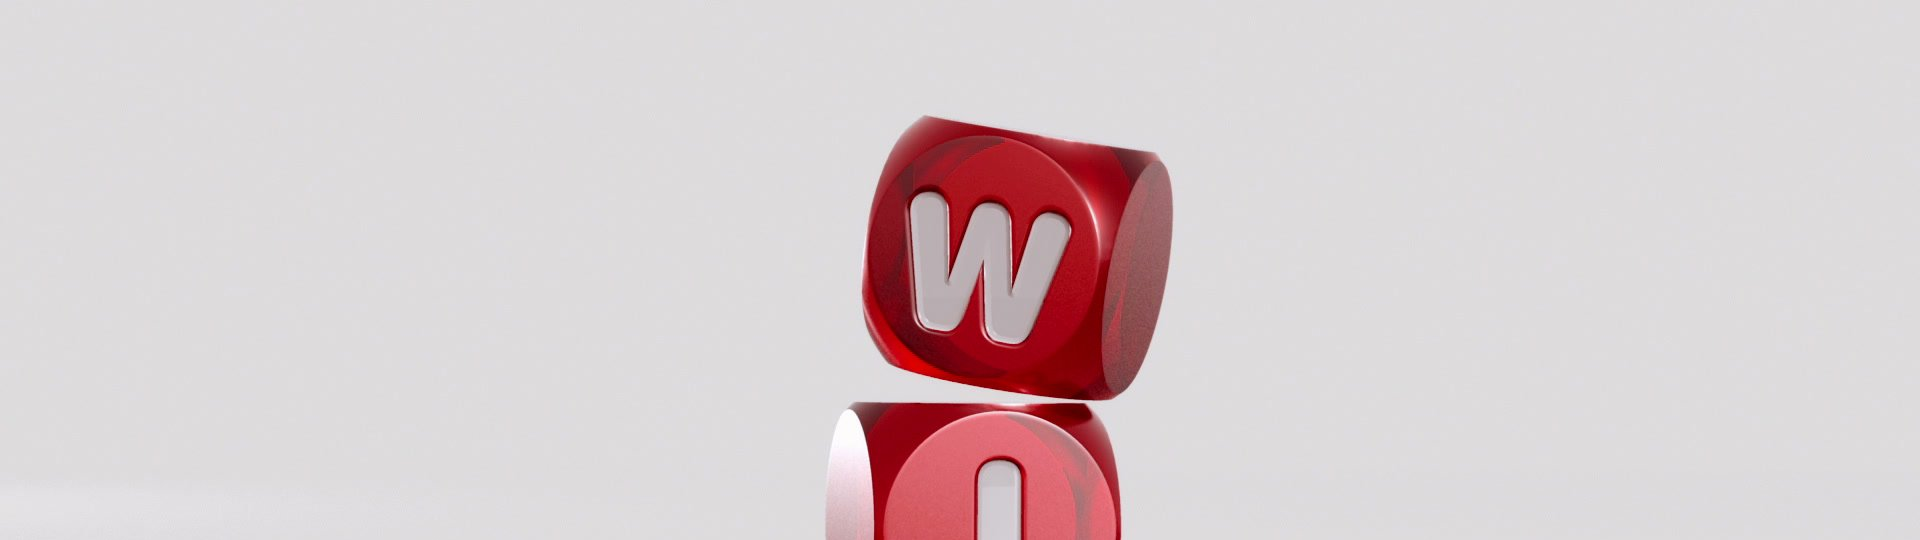 WIN Dices | 3D Red rolling dices on white. Result: word WIN - ID:13825